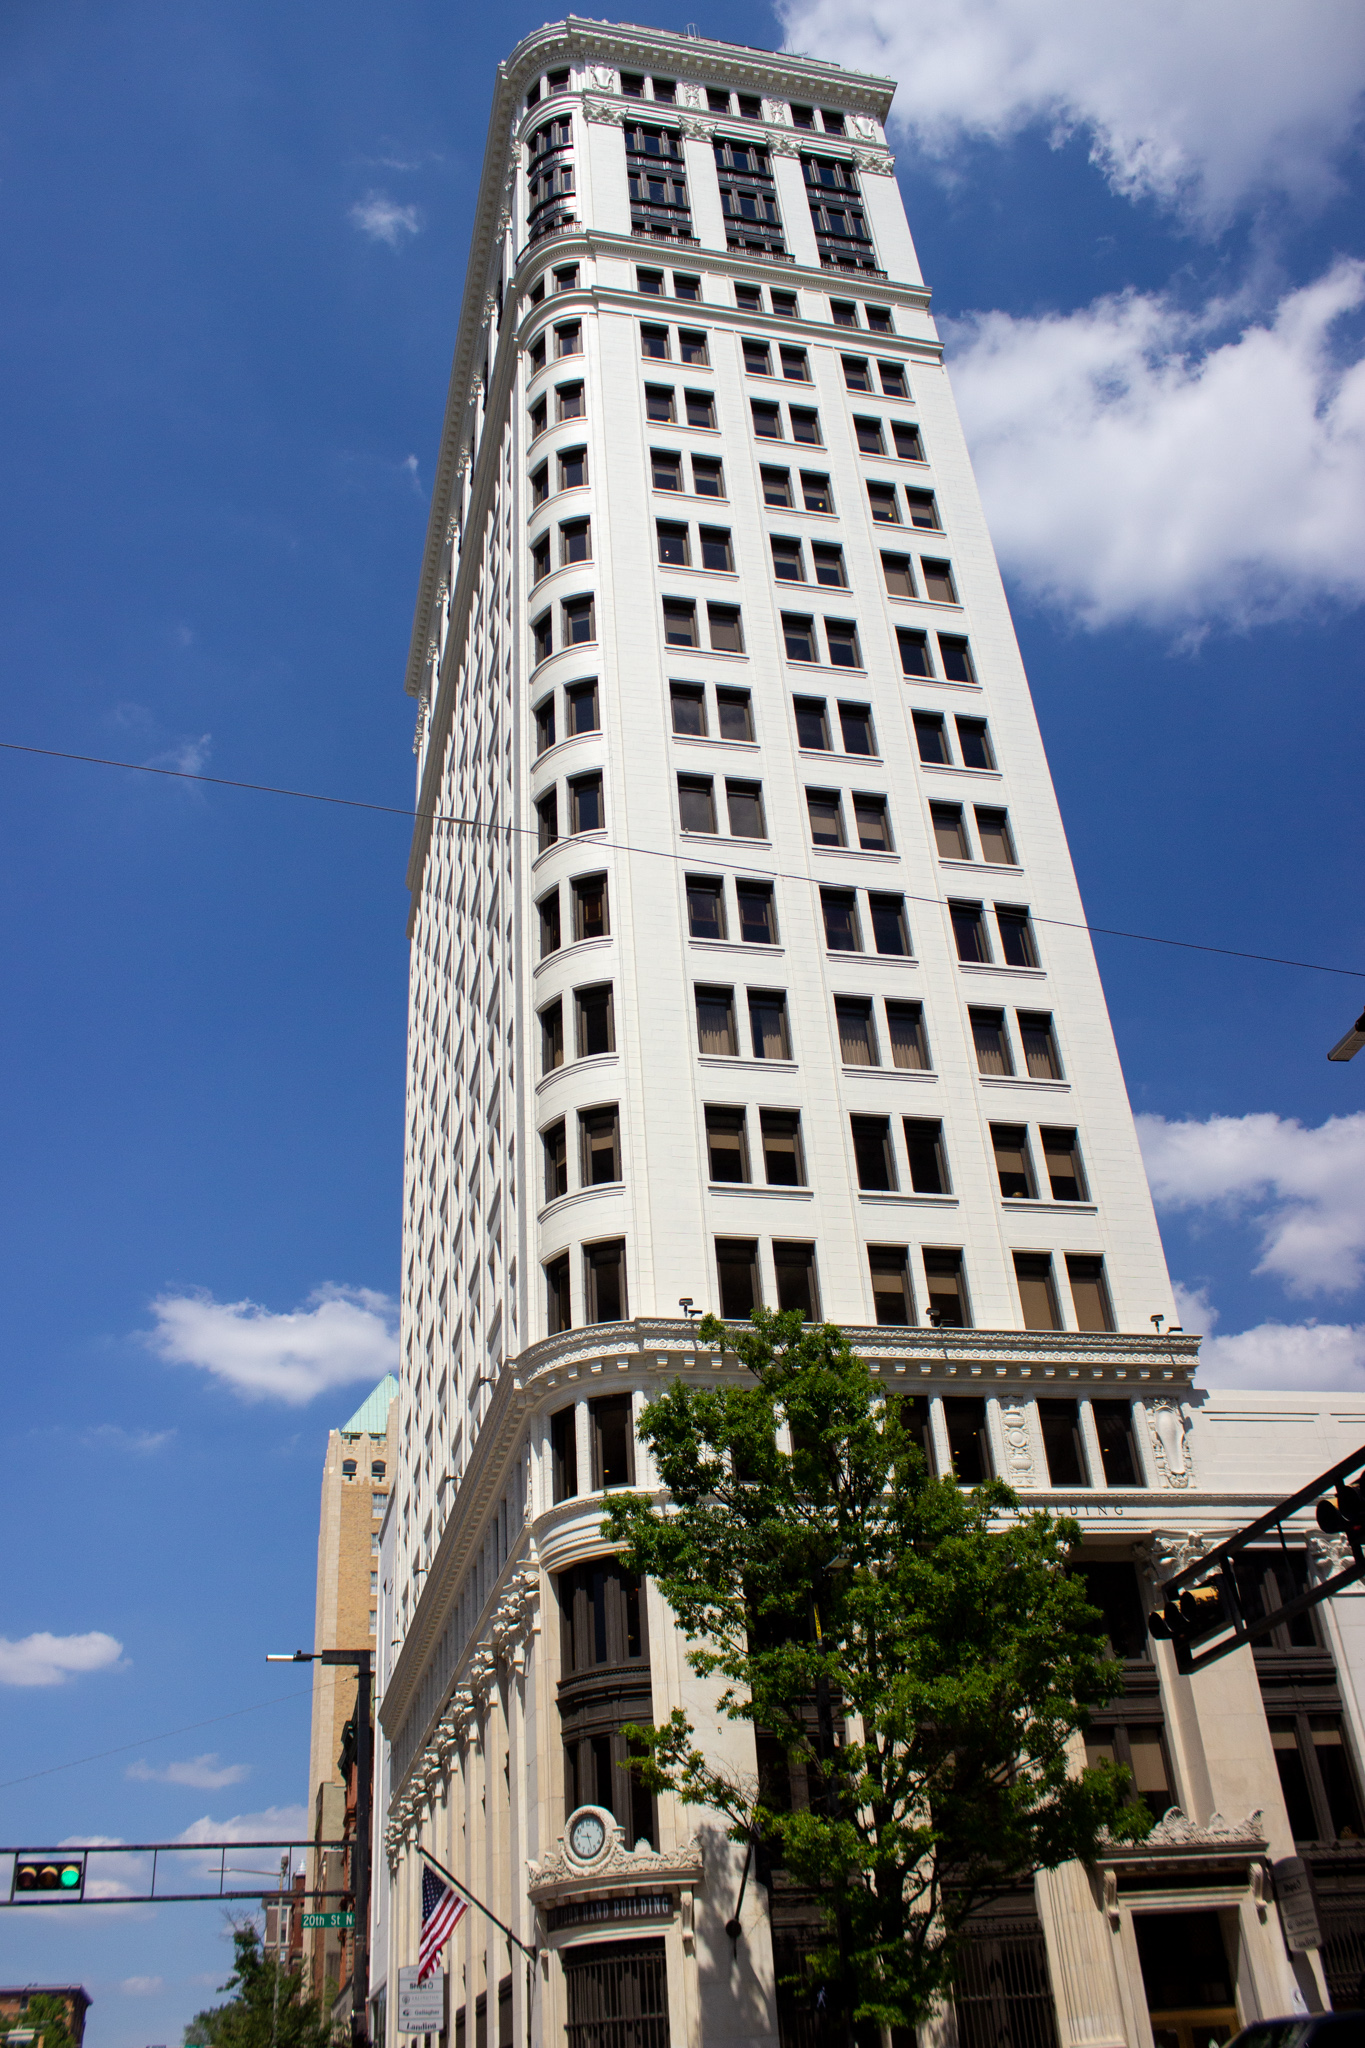 The John Hand Building is on the heaviest corner on earth. Photo by Libby Foster for Bham Now.